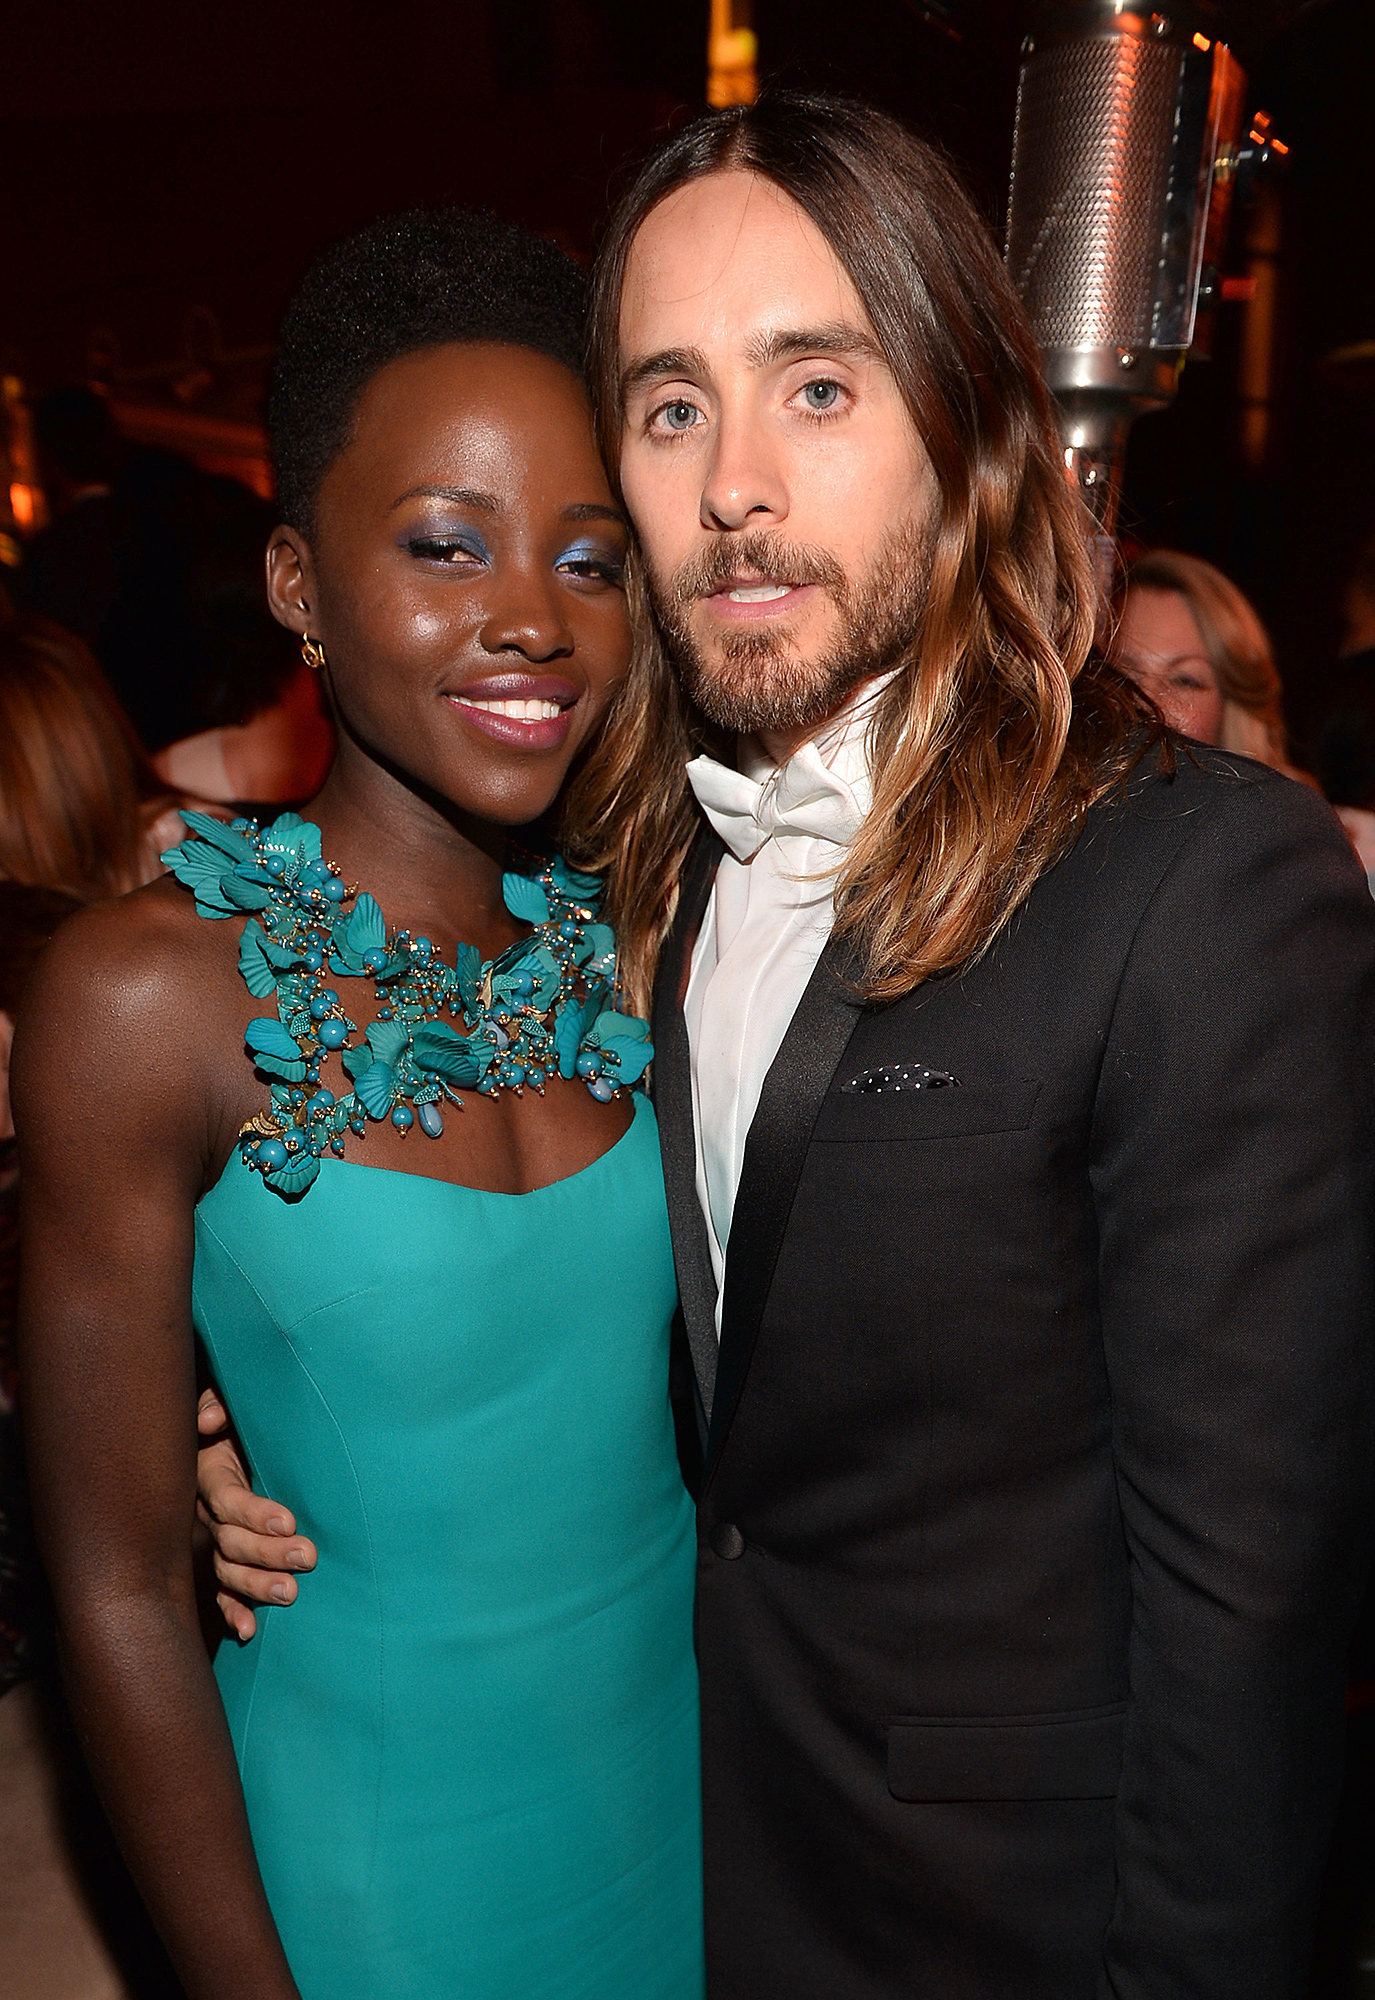 Lupita Nyong'o: There 'Was an Intimacy' With Jared Leto - Lupita Nyong'o (L) and Jared Leto attend the Weinstein Company & Netflix's 2014 SAG after party in partnership with Laura Mercier at Sunset Tower on January 18, 2014 in West Hollywood, California.